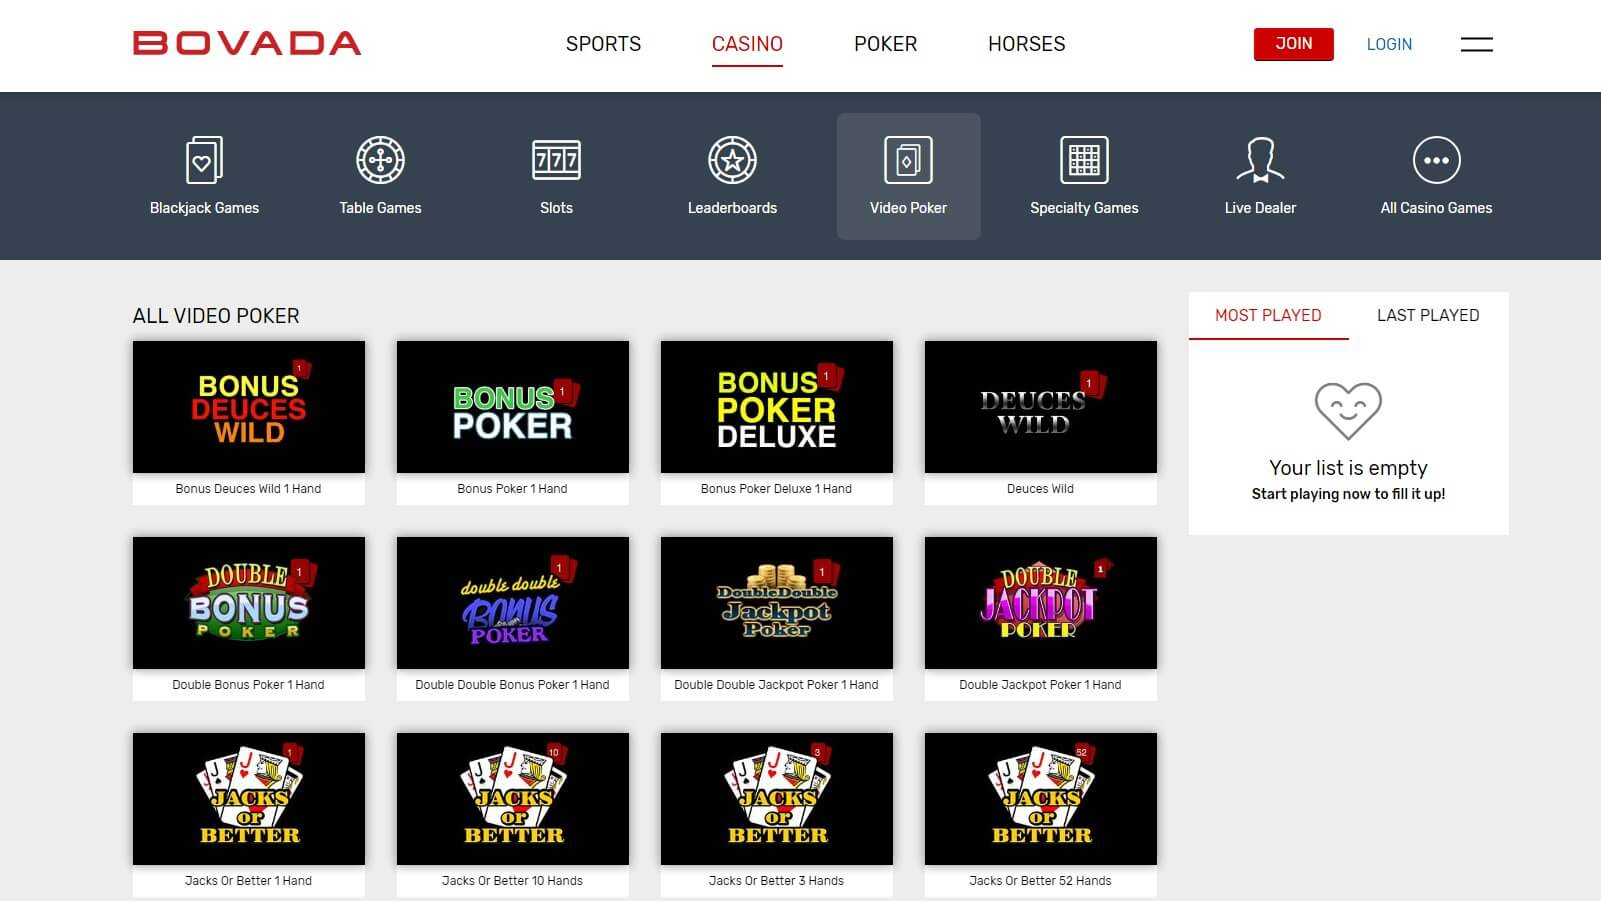 Play Video poker at Bovada